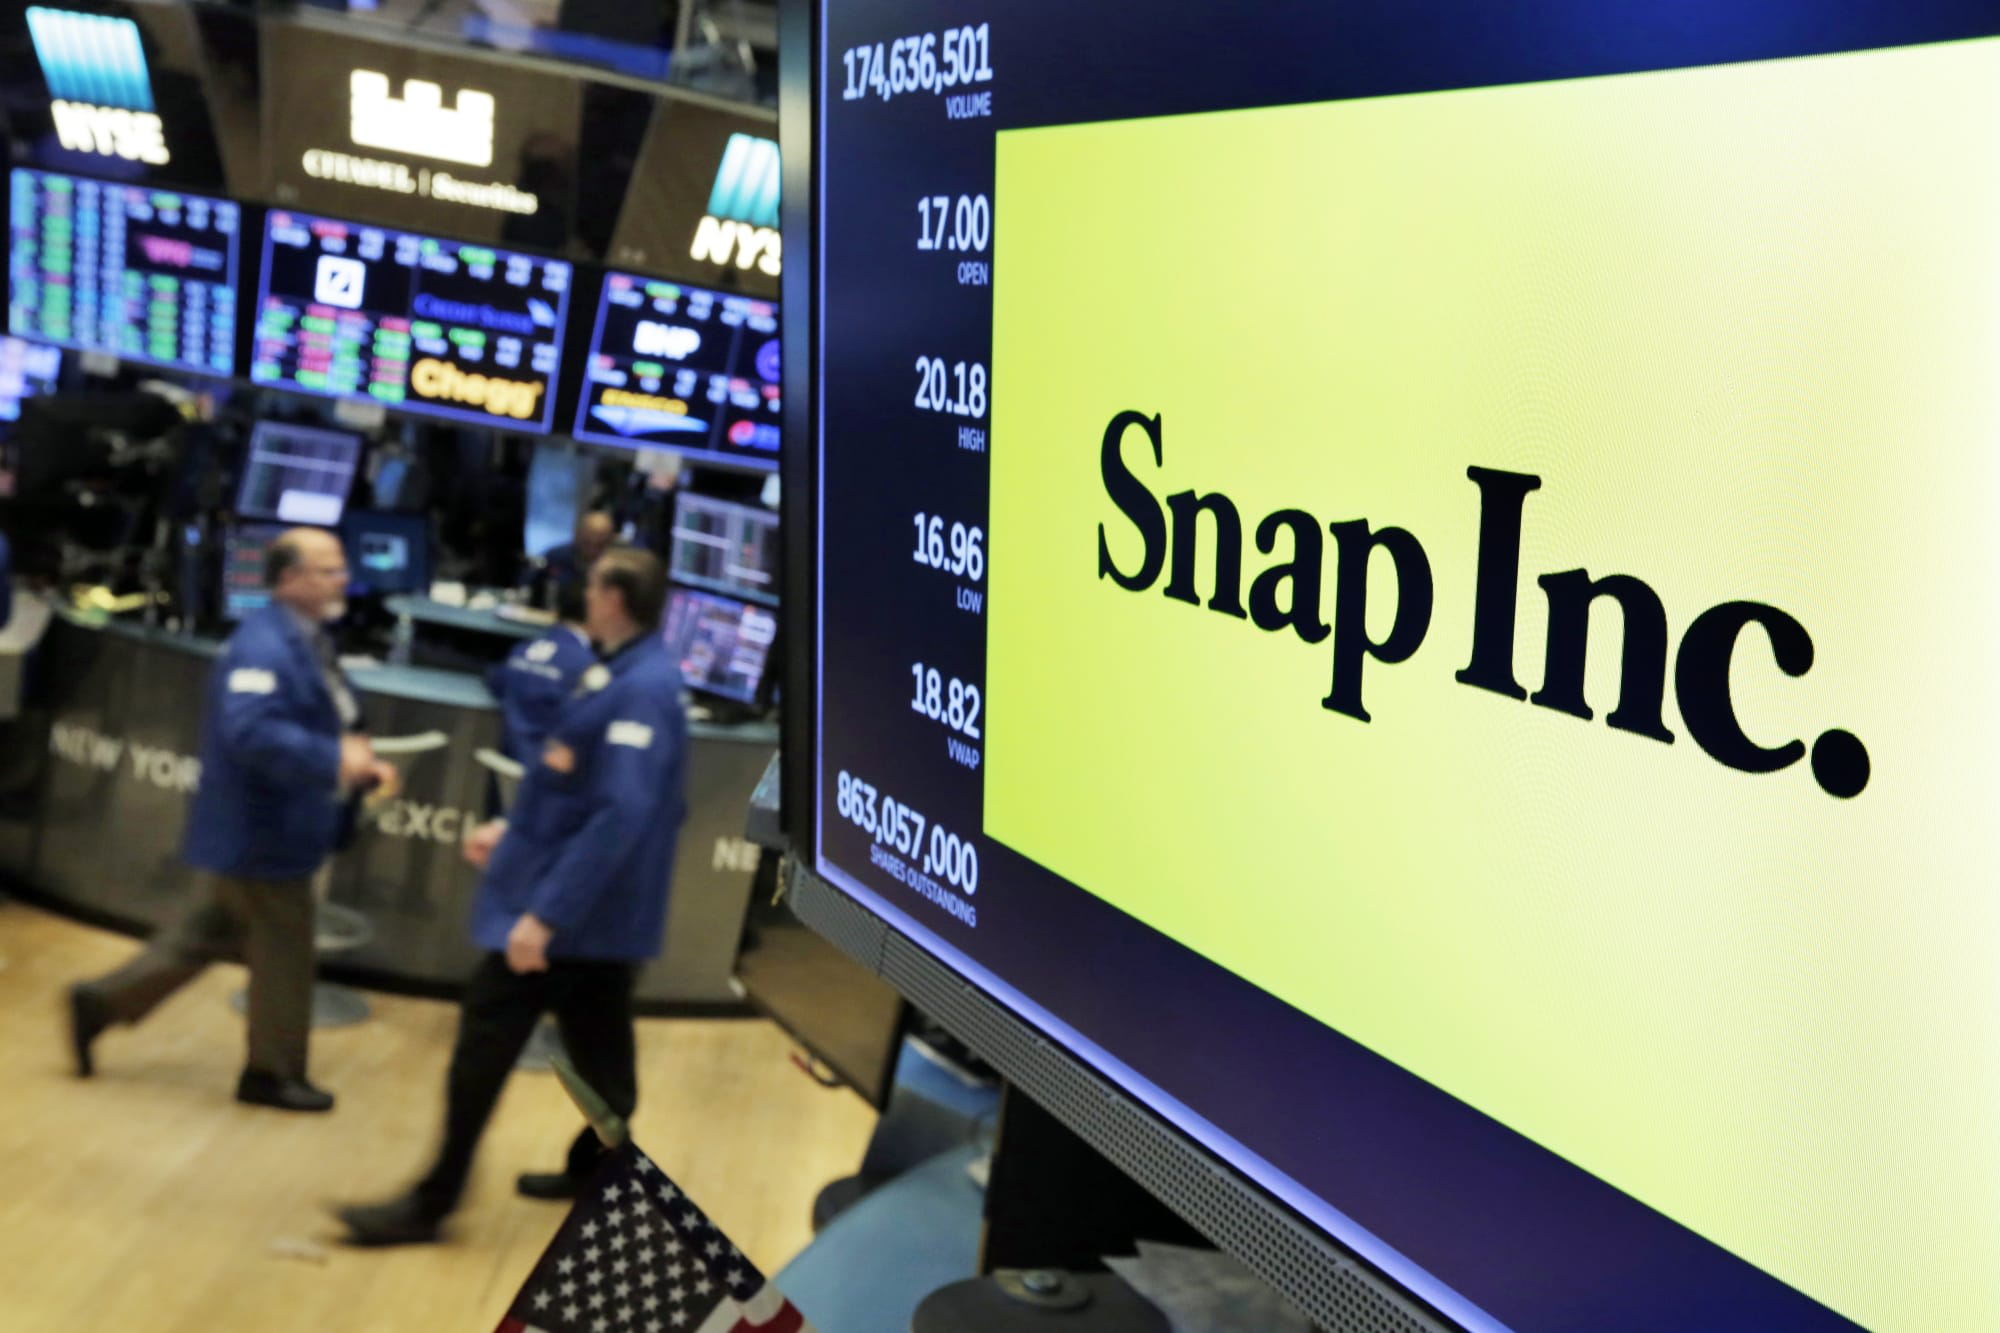 Snapchat had more than 200 million daily users last quarter